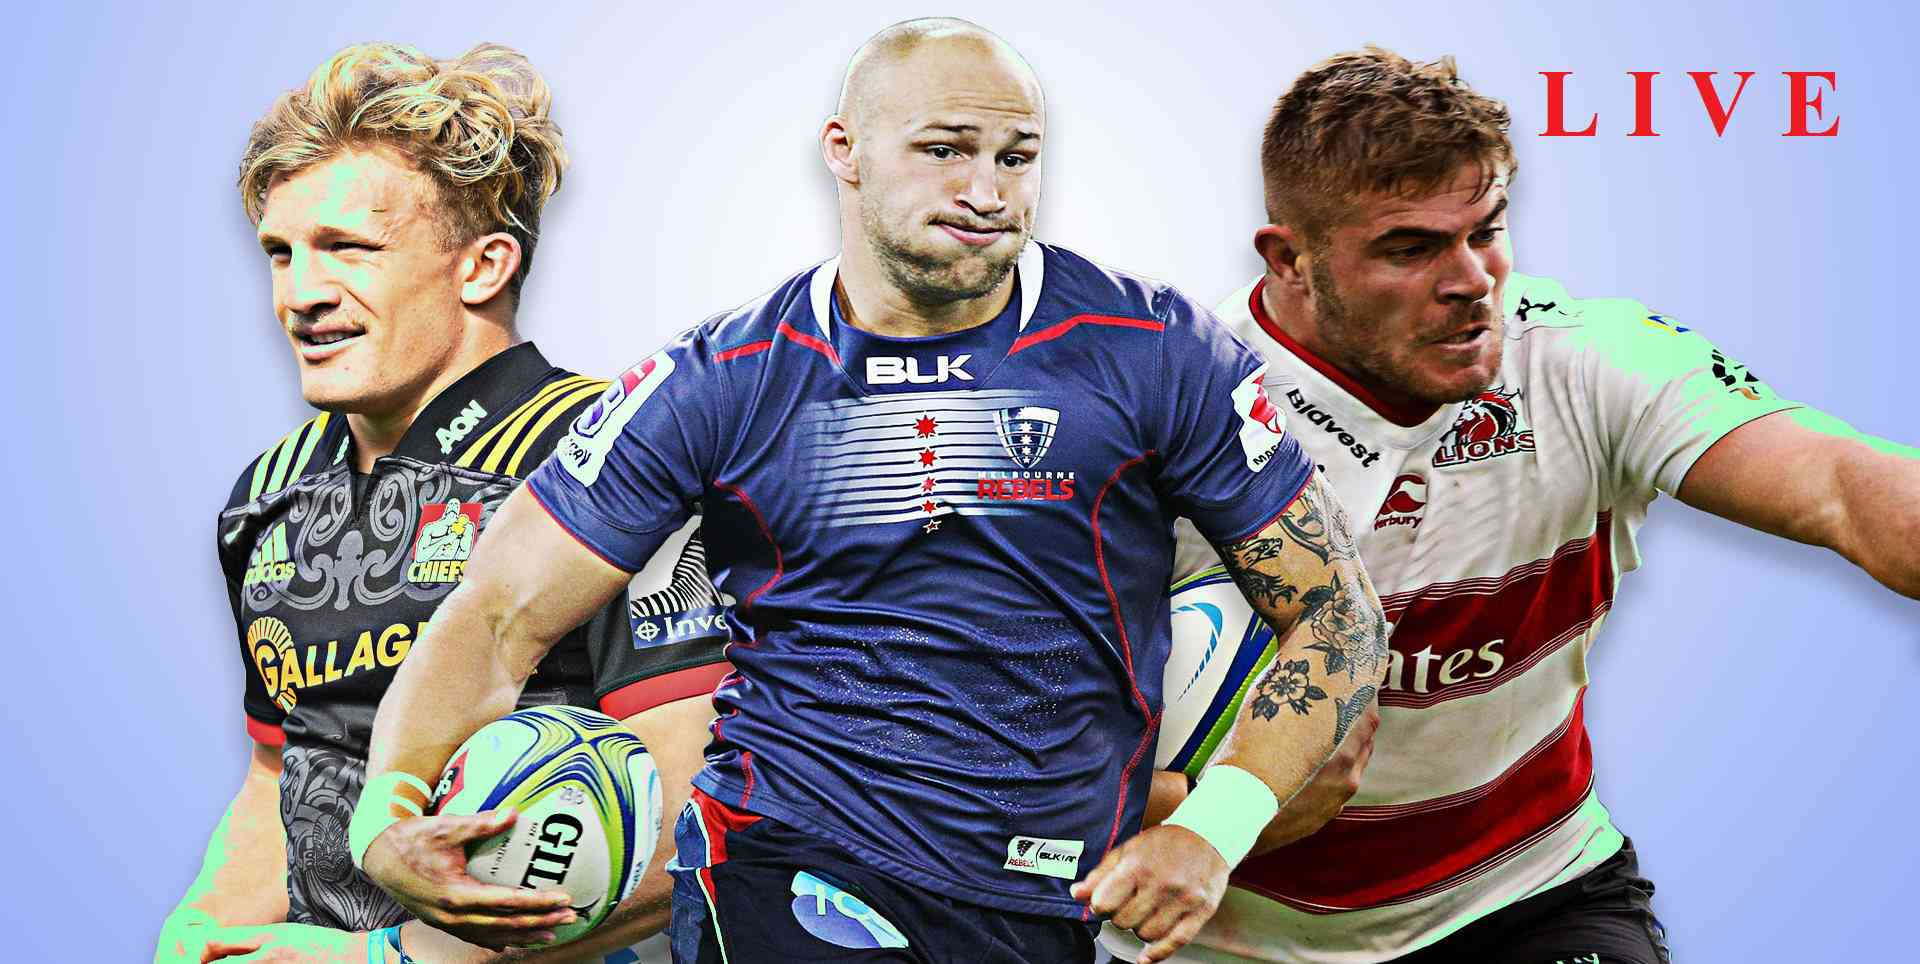 auckland-vs-otago-rugby-live-streaming